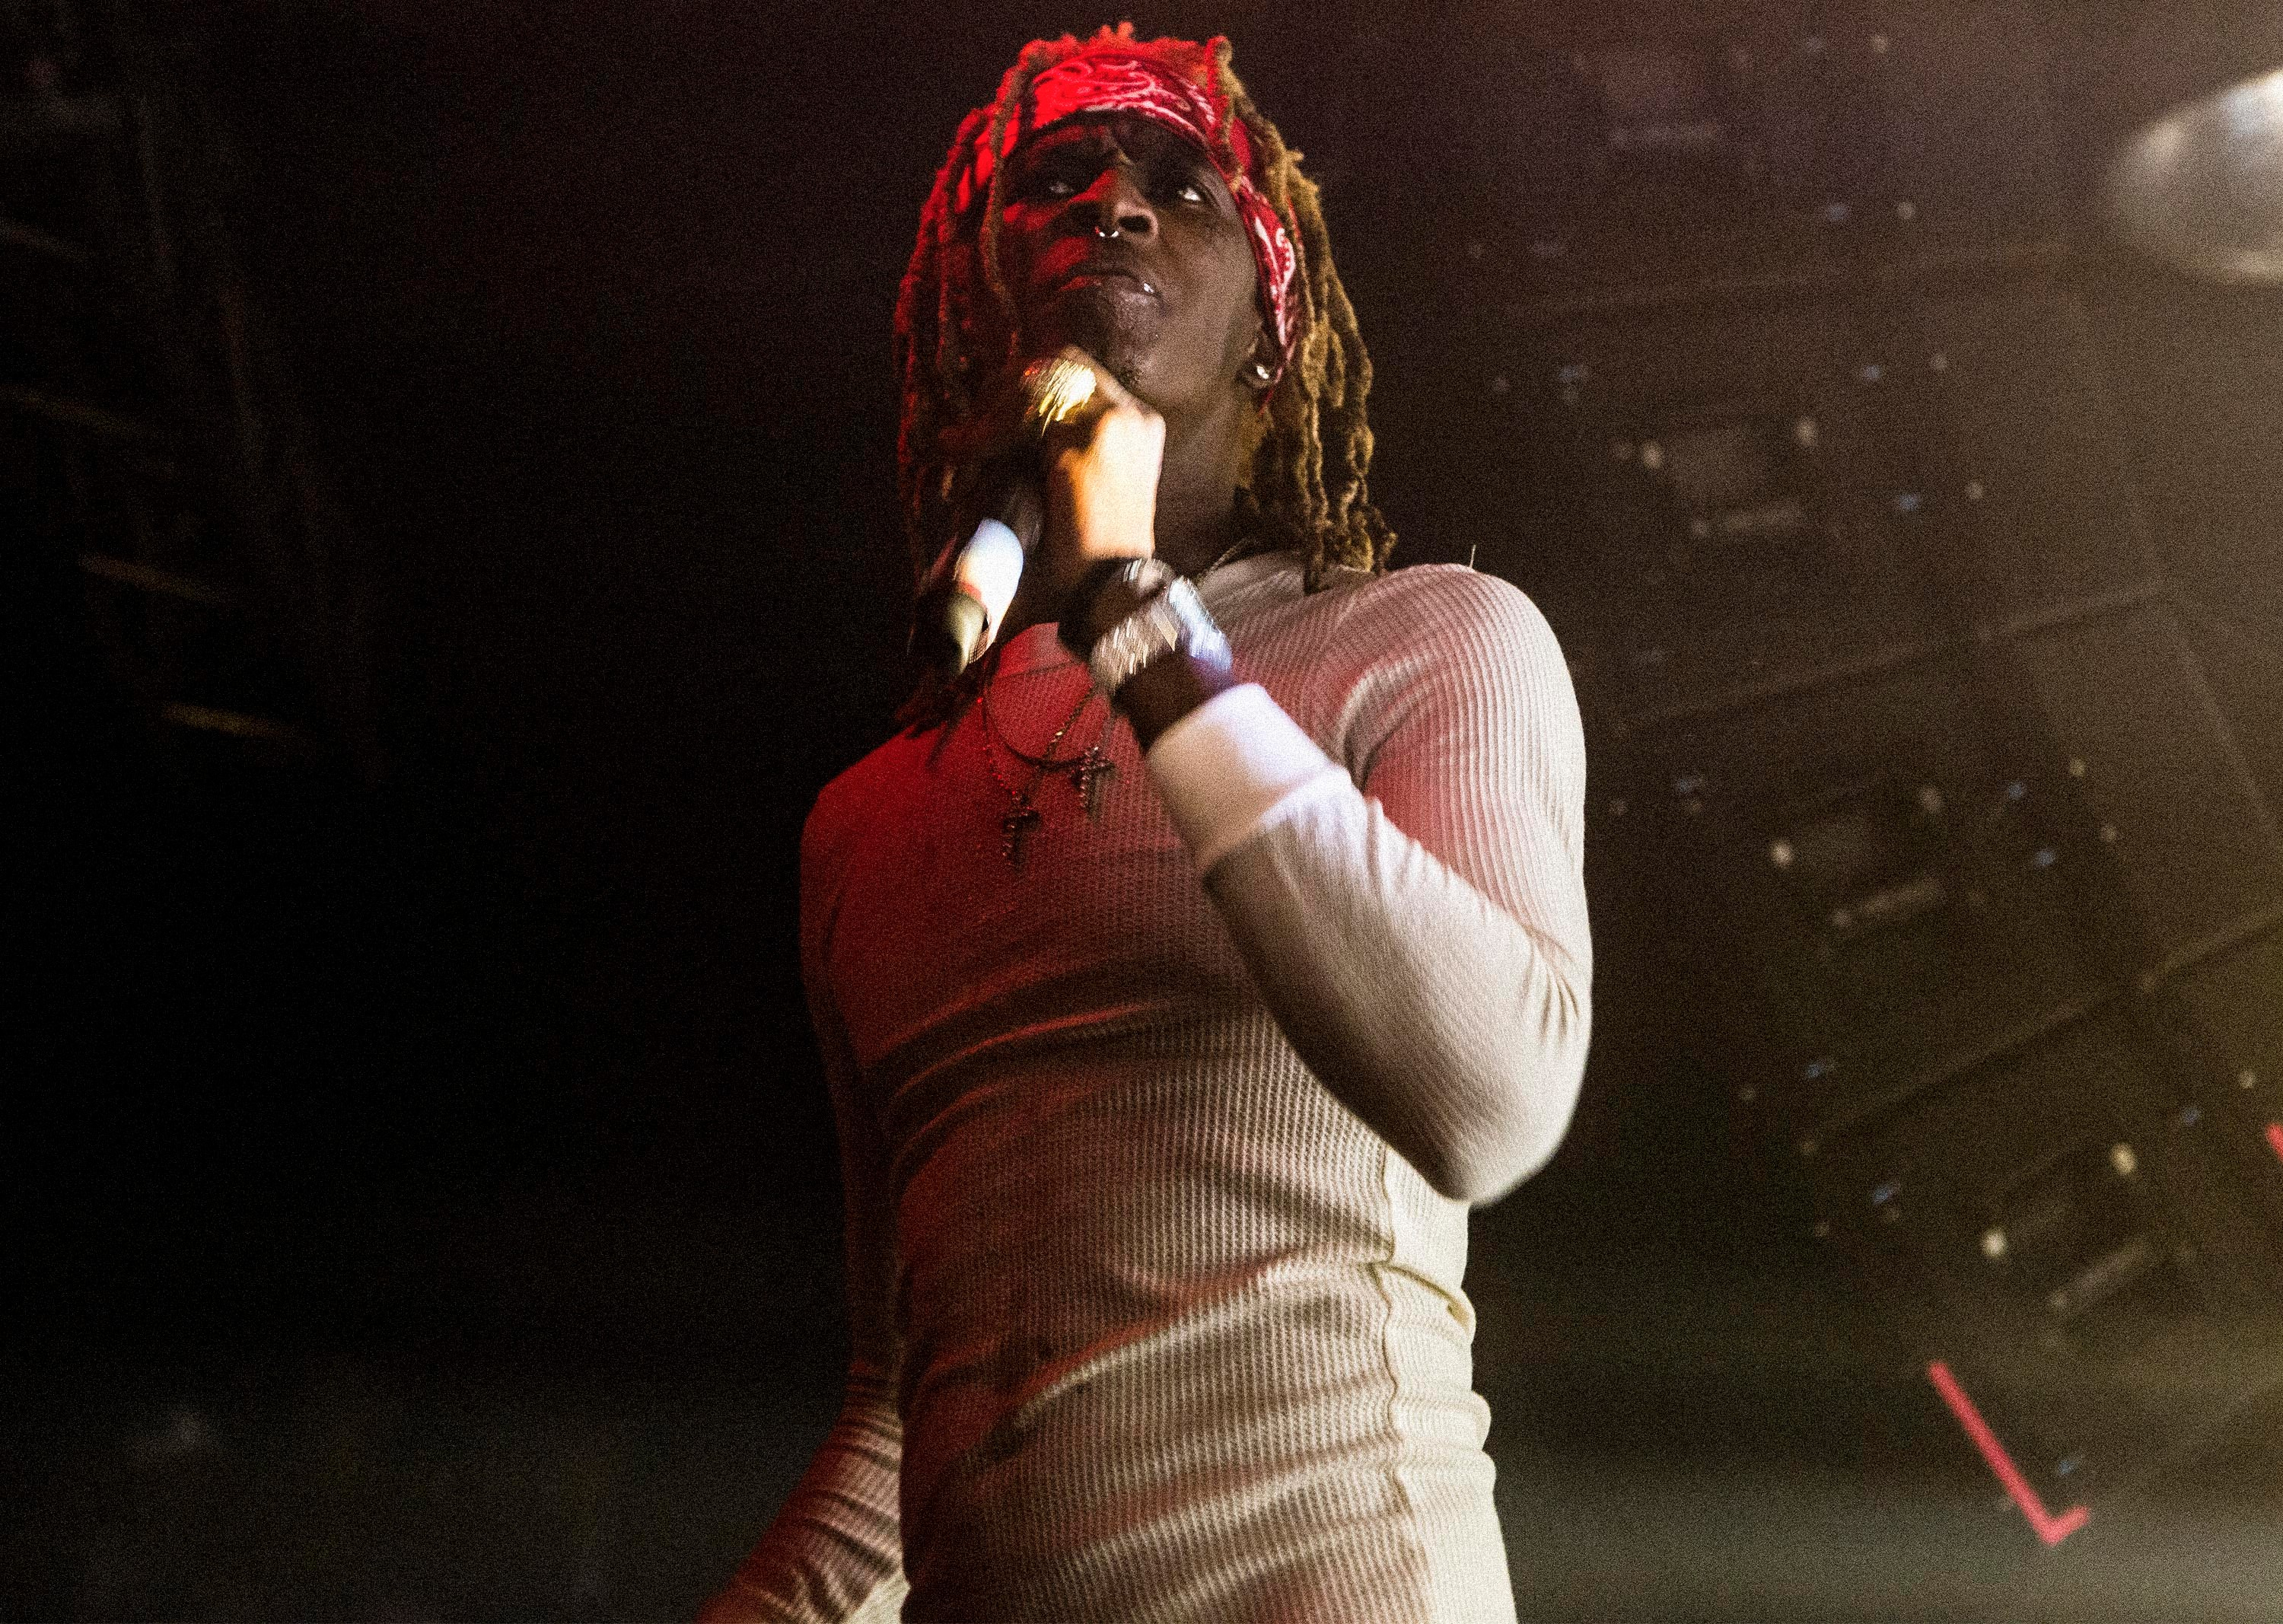 Travis Scott Young Thug Rodeo Tour Chicago